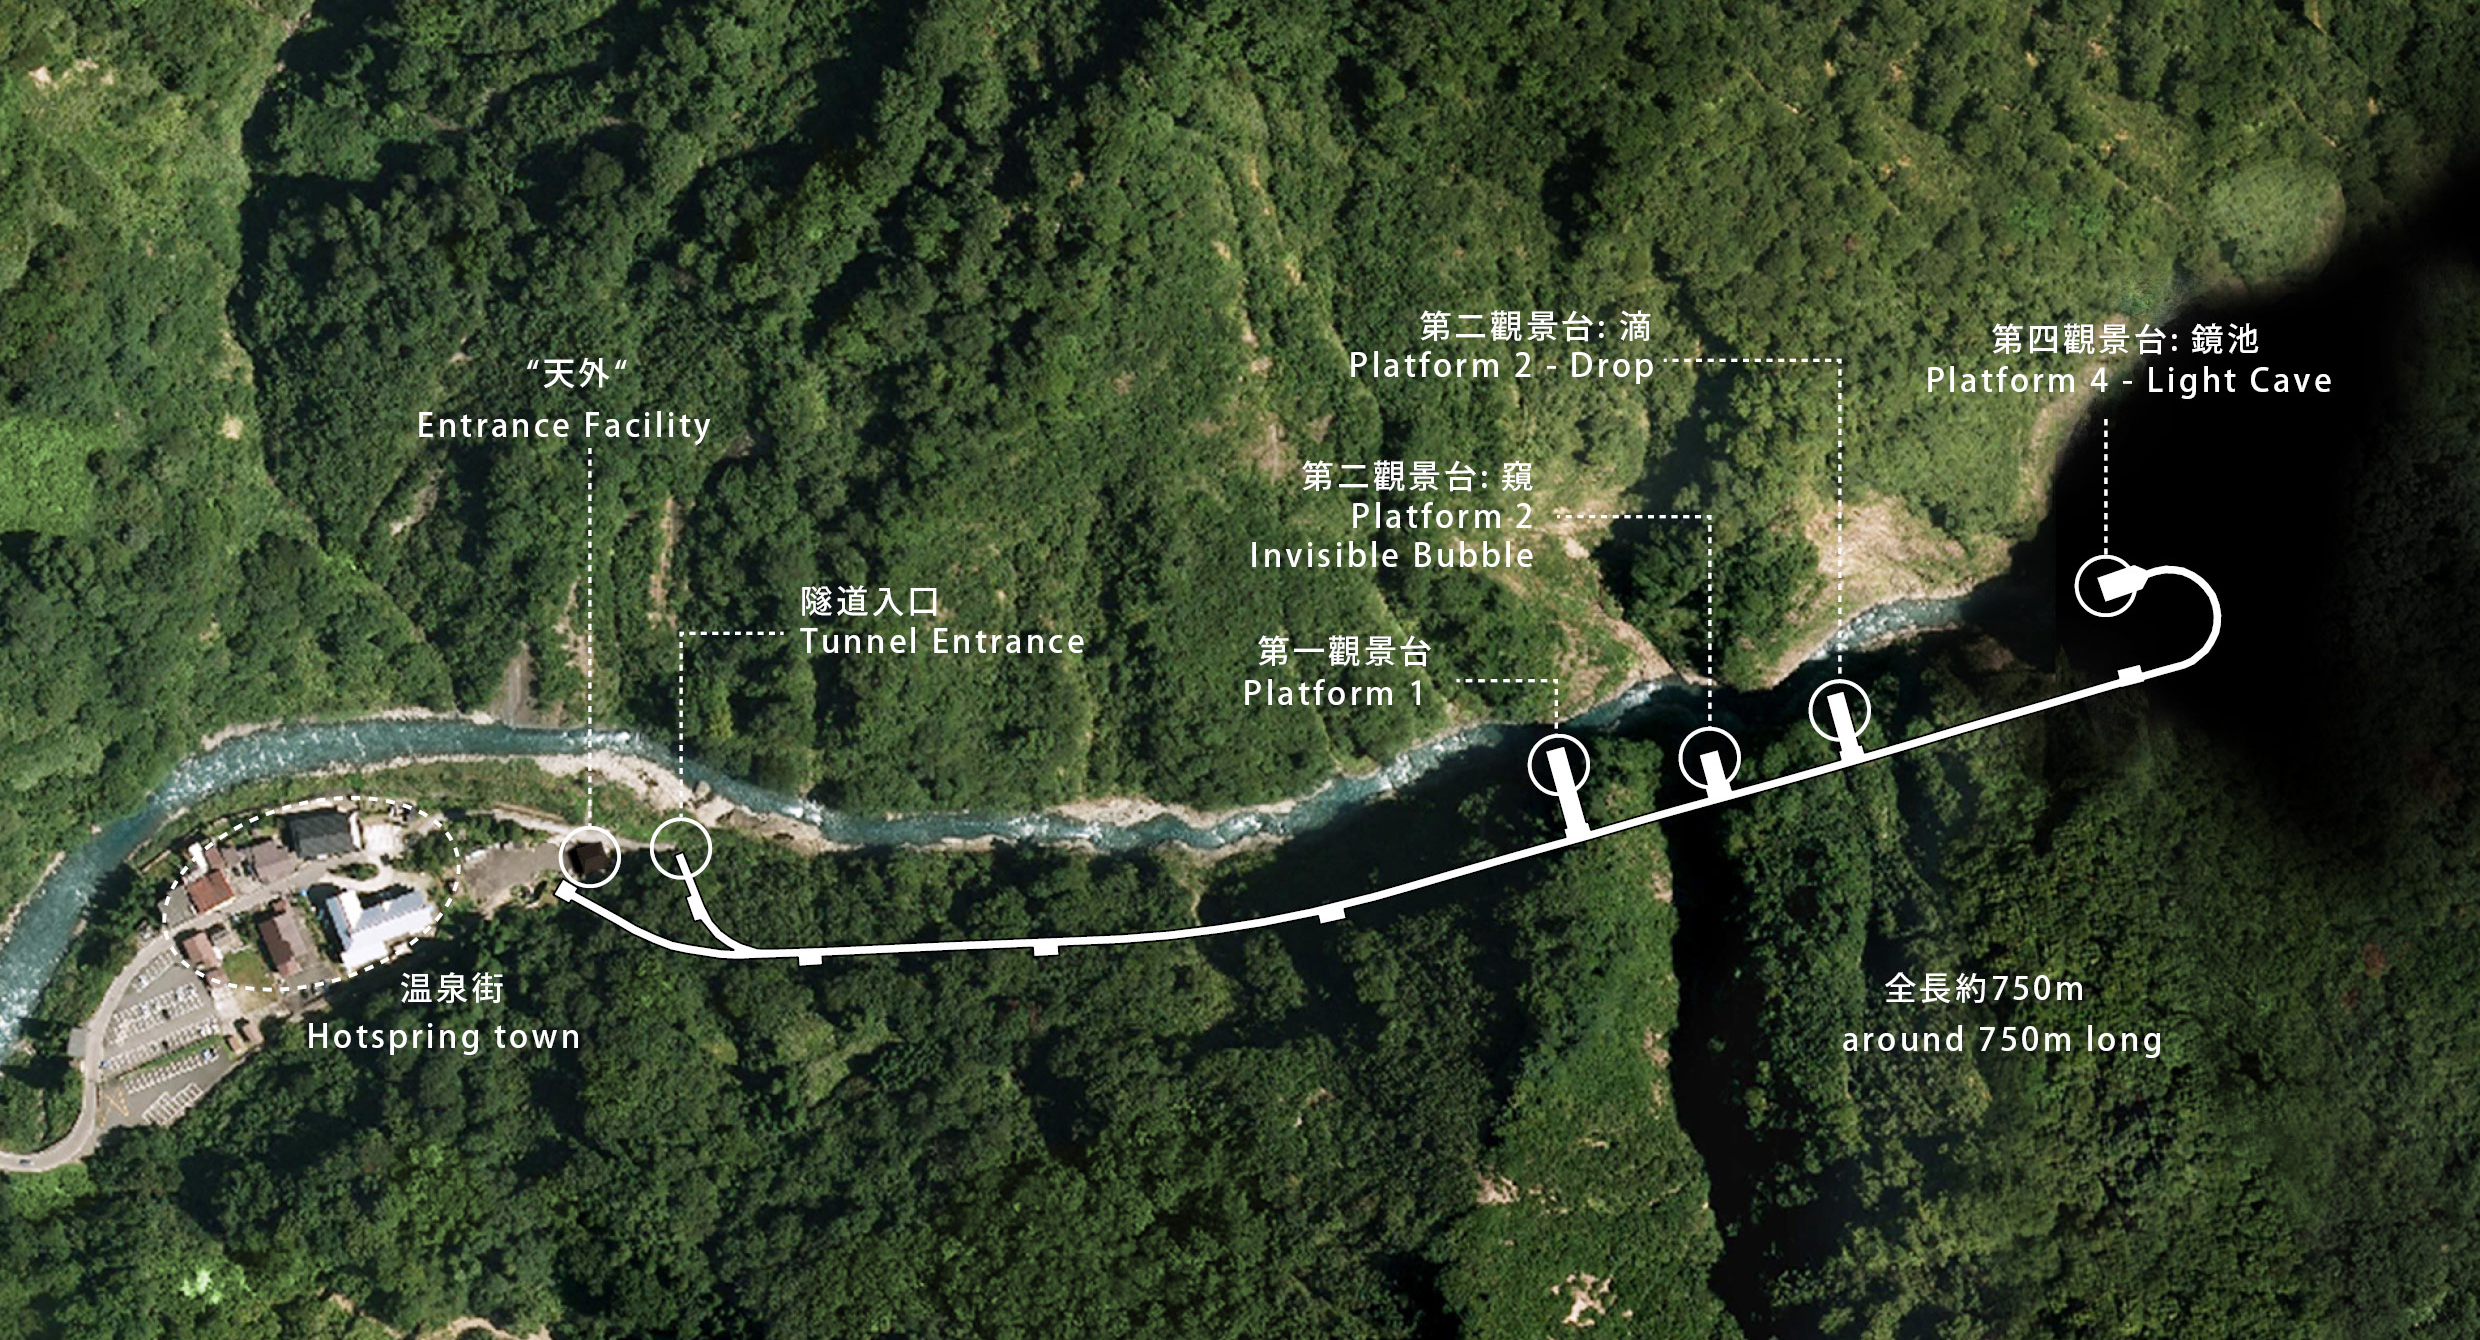 01_MAD_Echigo Tsumari_Tunnel of Light_Sitemap_low-res